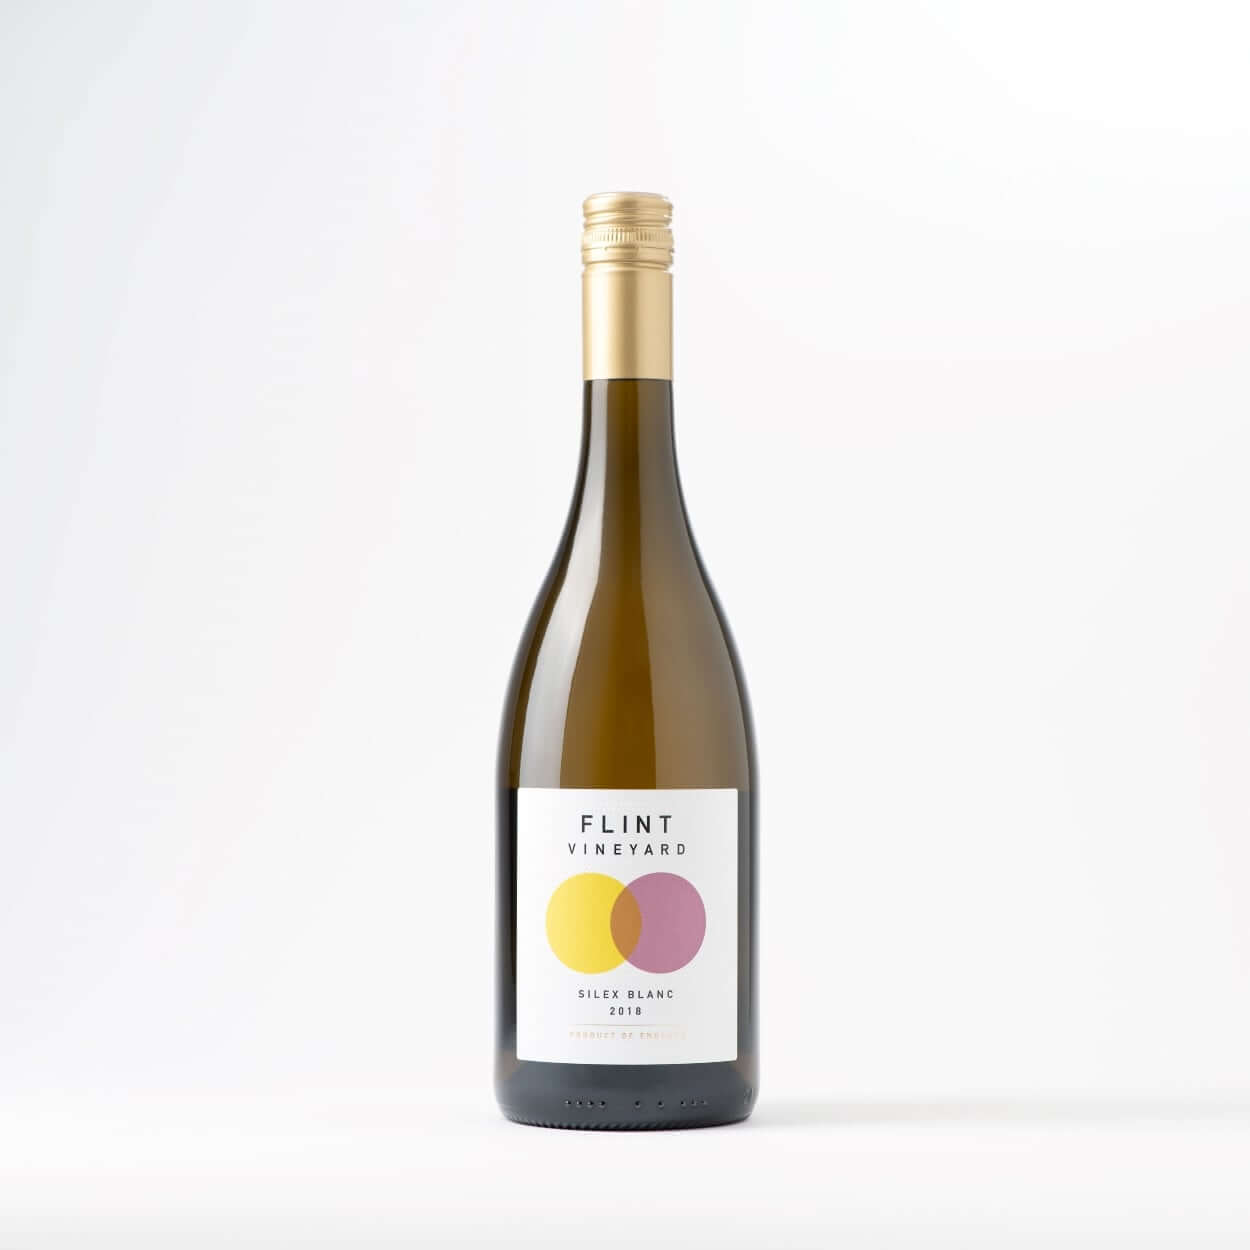 Flint Vineyard Silex Blanc 2018 English White Wine